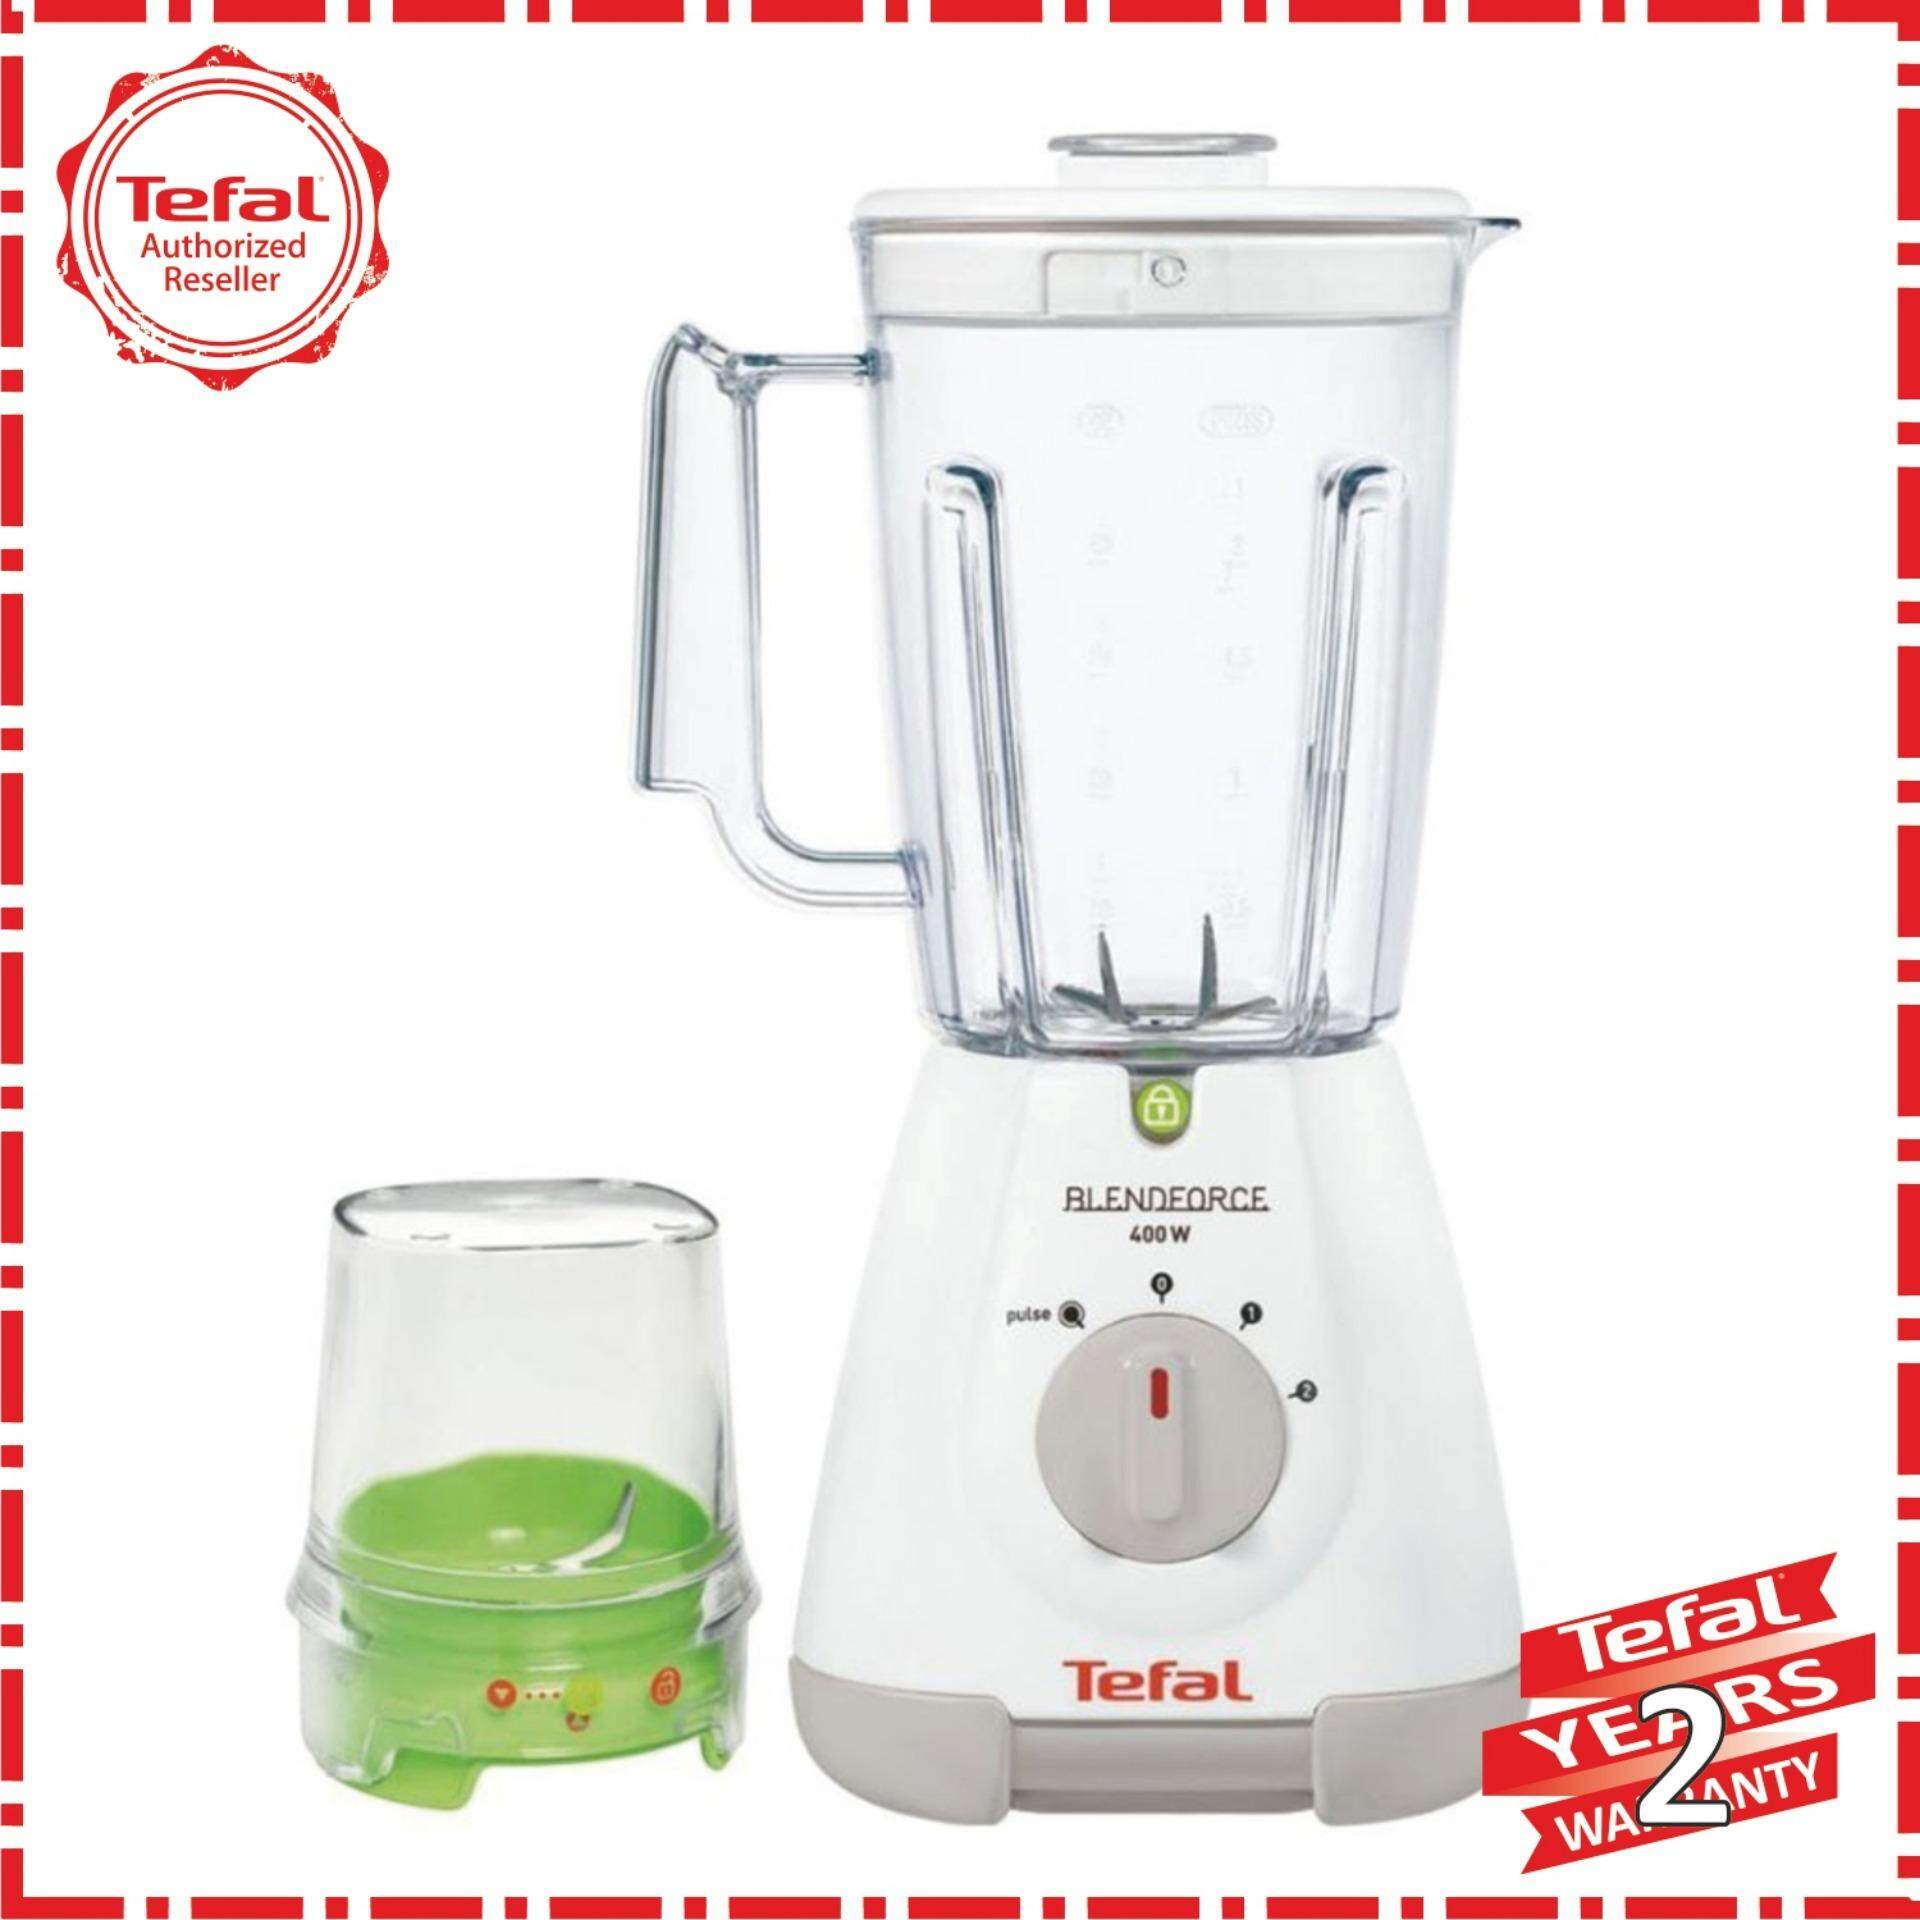 Tefal Kitchen Appliances & Cookware Best Price In Malaysia